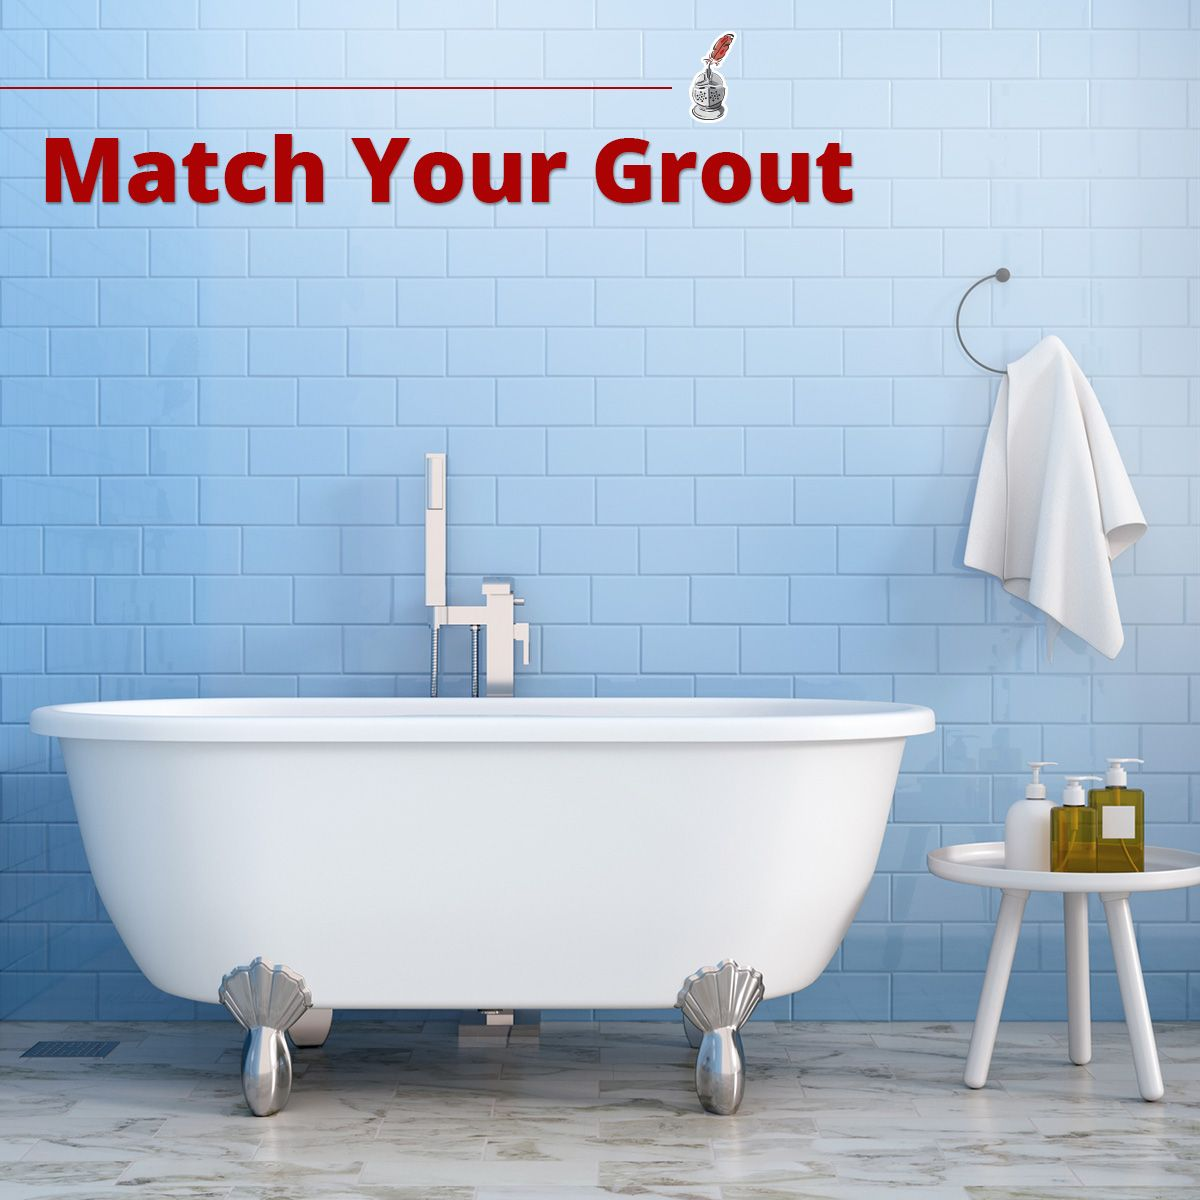 Match Your Grout